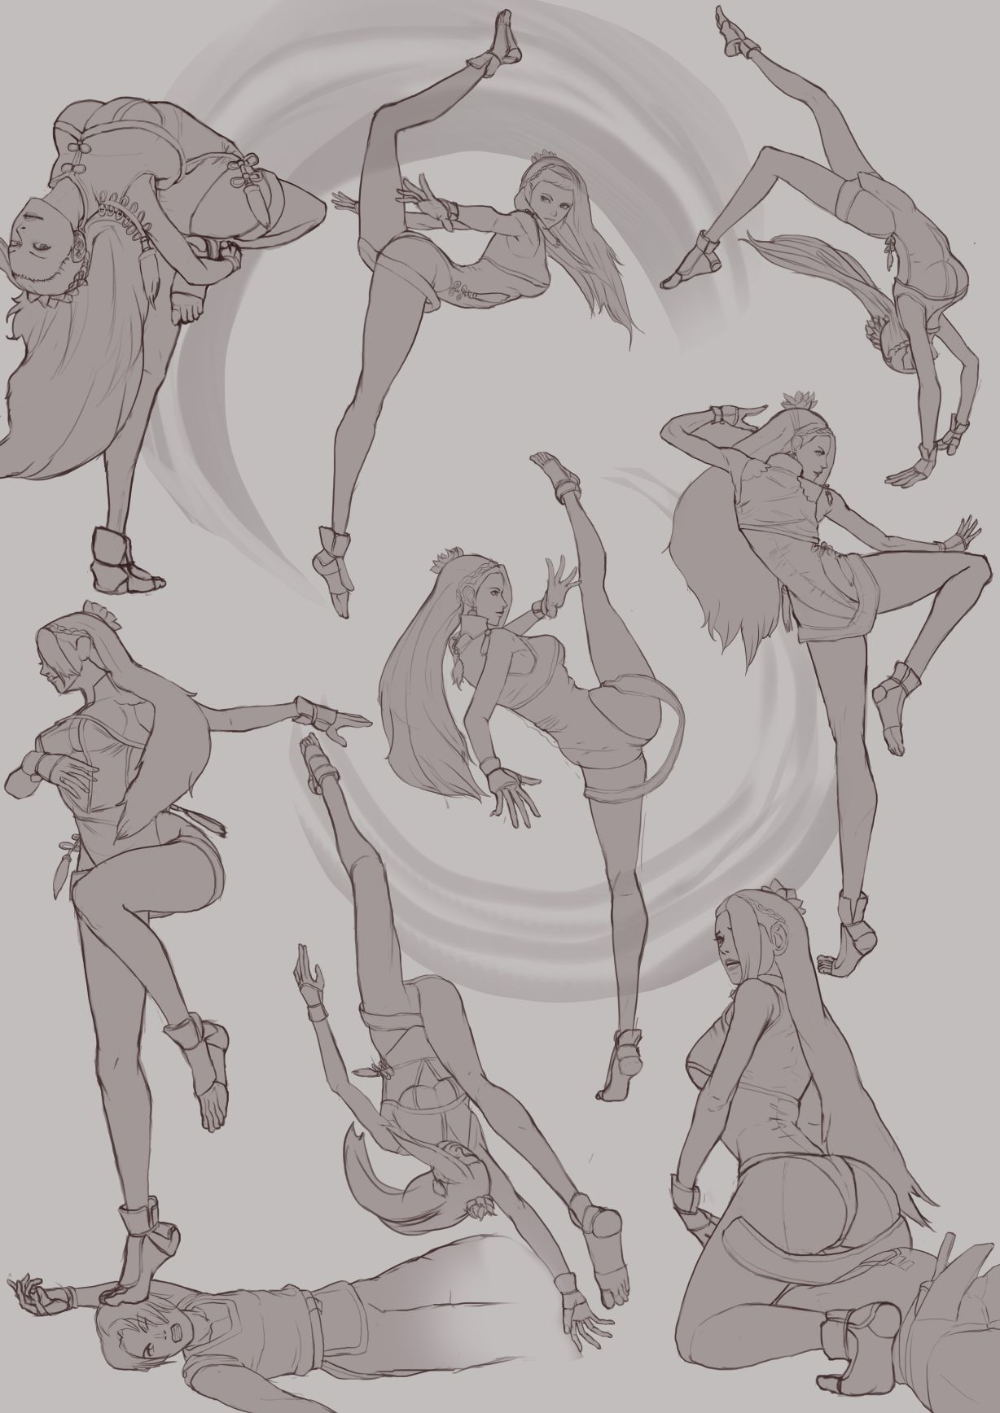 Art Of Lec Luong Kof Poses In 2020 Anime Poses Reference Art Reference Poses Sketch Poses